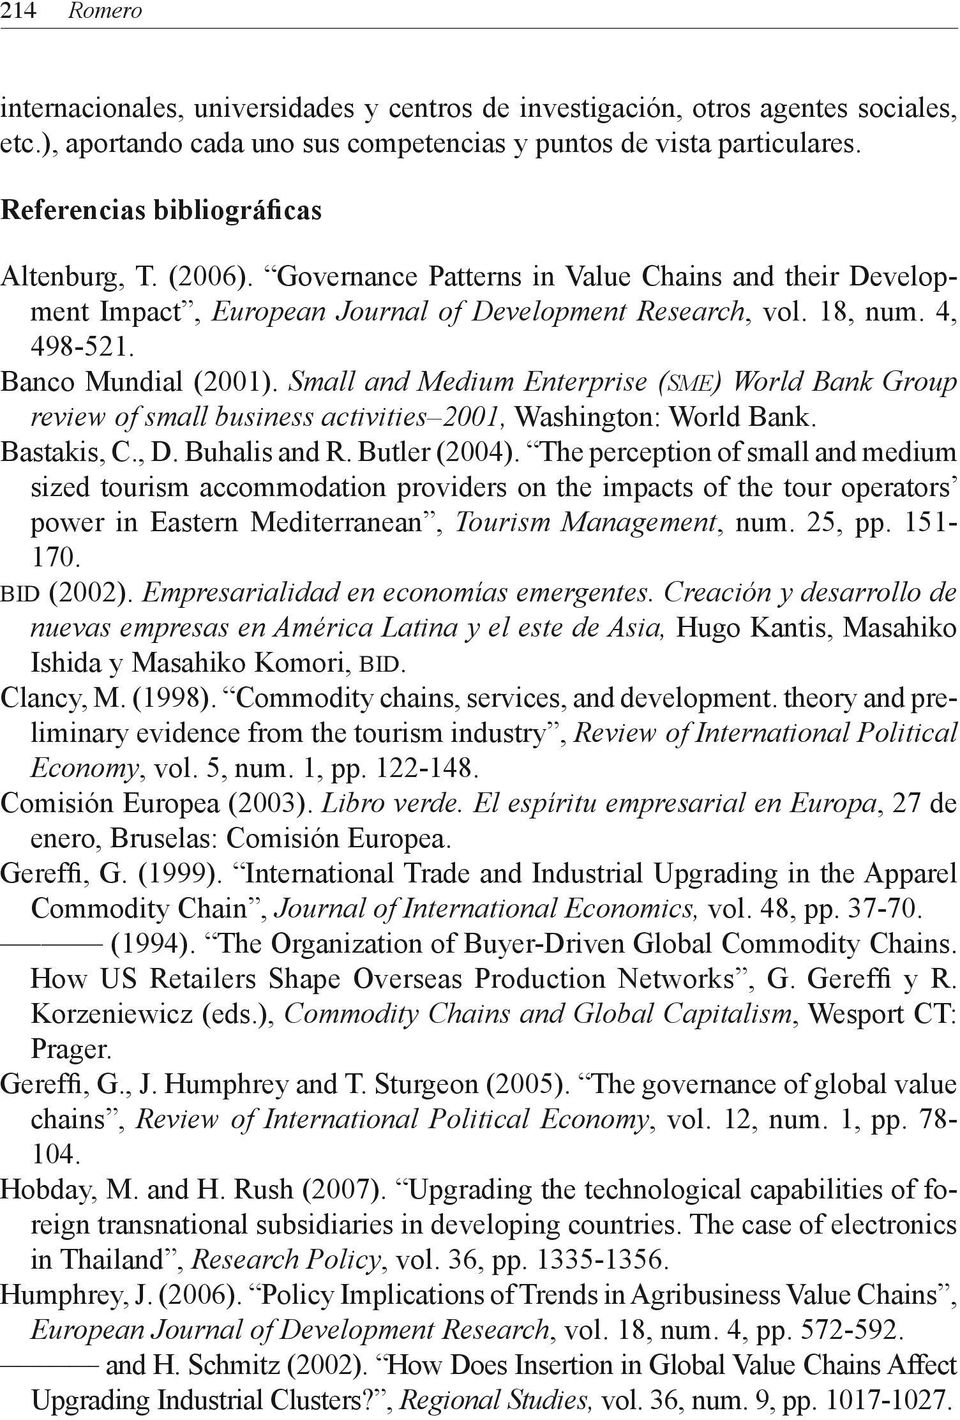 Banco Mundial (2001). Small and Medium Enterprise (sme) World Bank Group review of small business activities 2001, Washington: World Bank. Bastakis, C., D. Buhalis and R. Butler (2004).